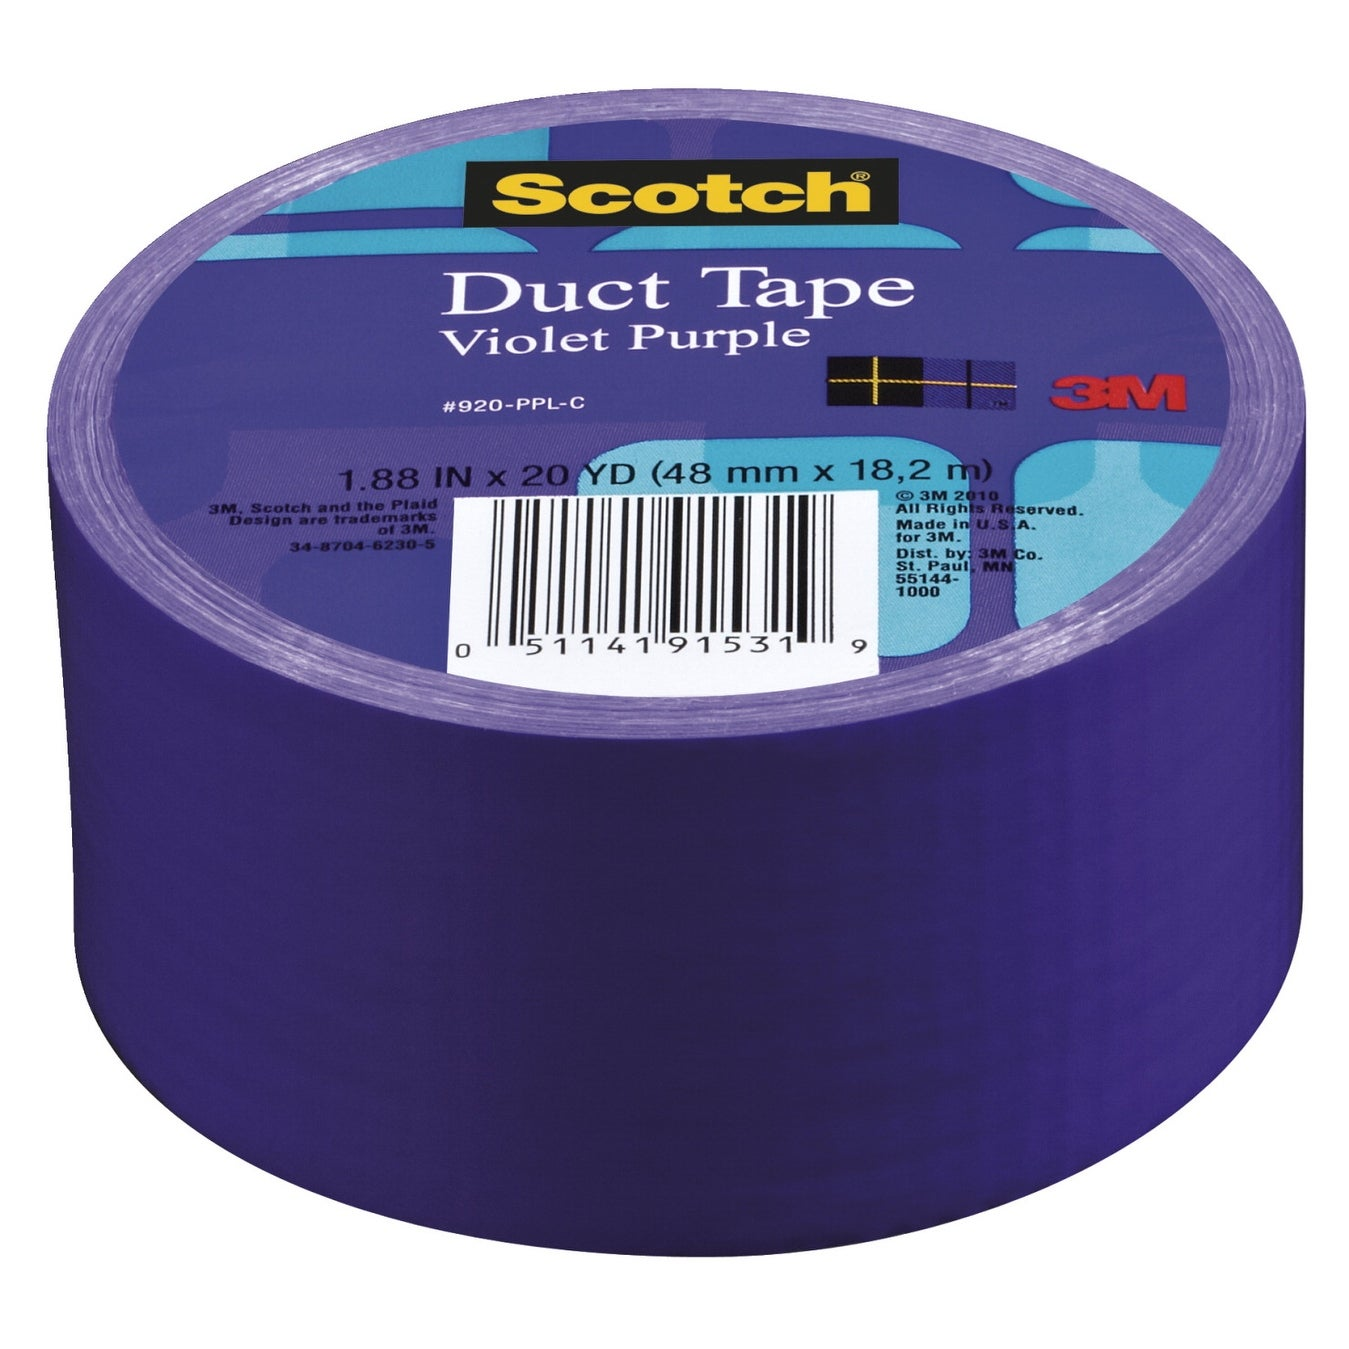 Hot Pink Scotch Duct Tape 1.88 Inches x 20 Yards